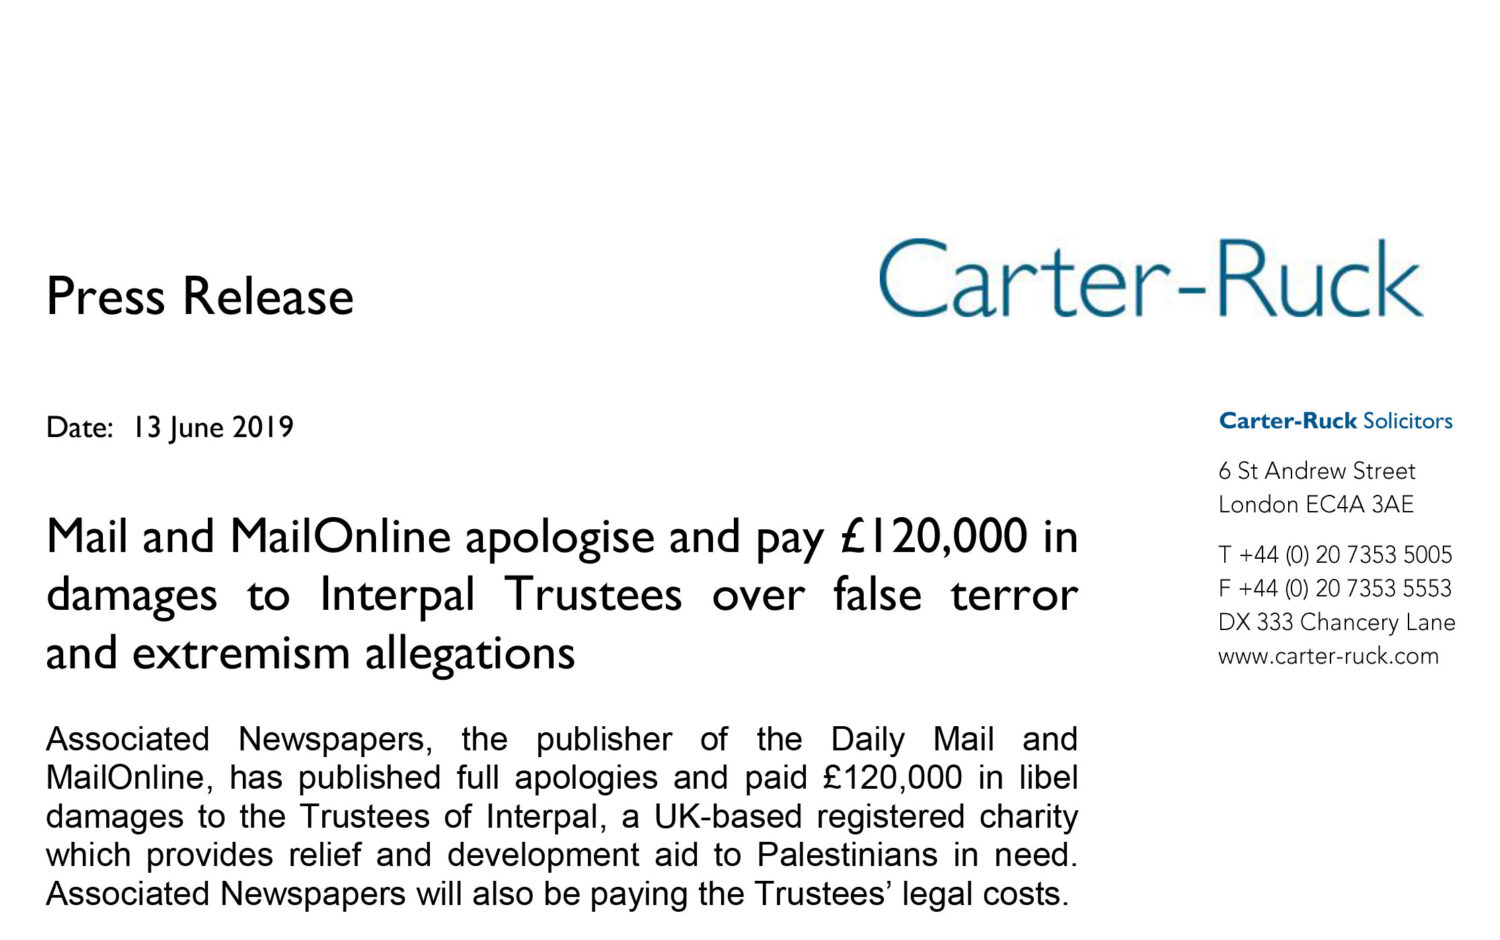 Mail and MailOnline apologise and pay £120,000 in damages to Interpal Trustees over false terror and extremism allegations